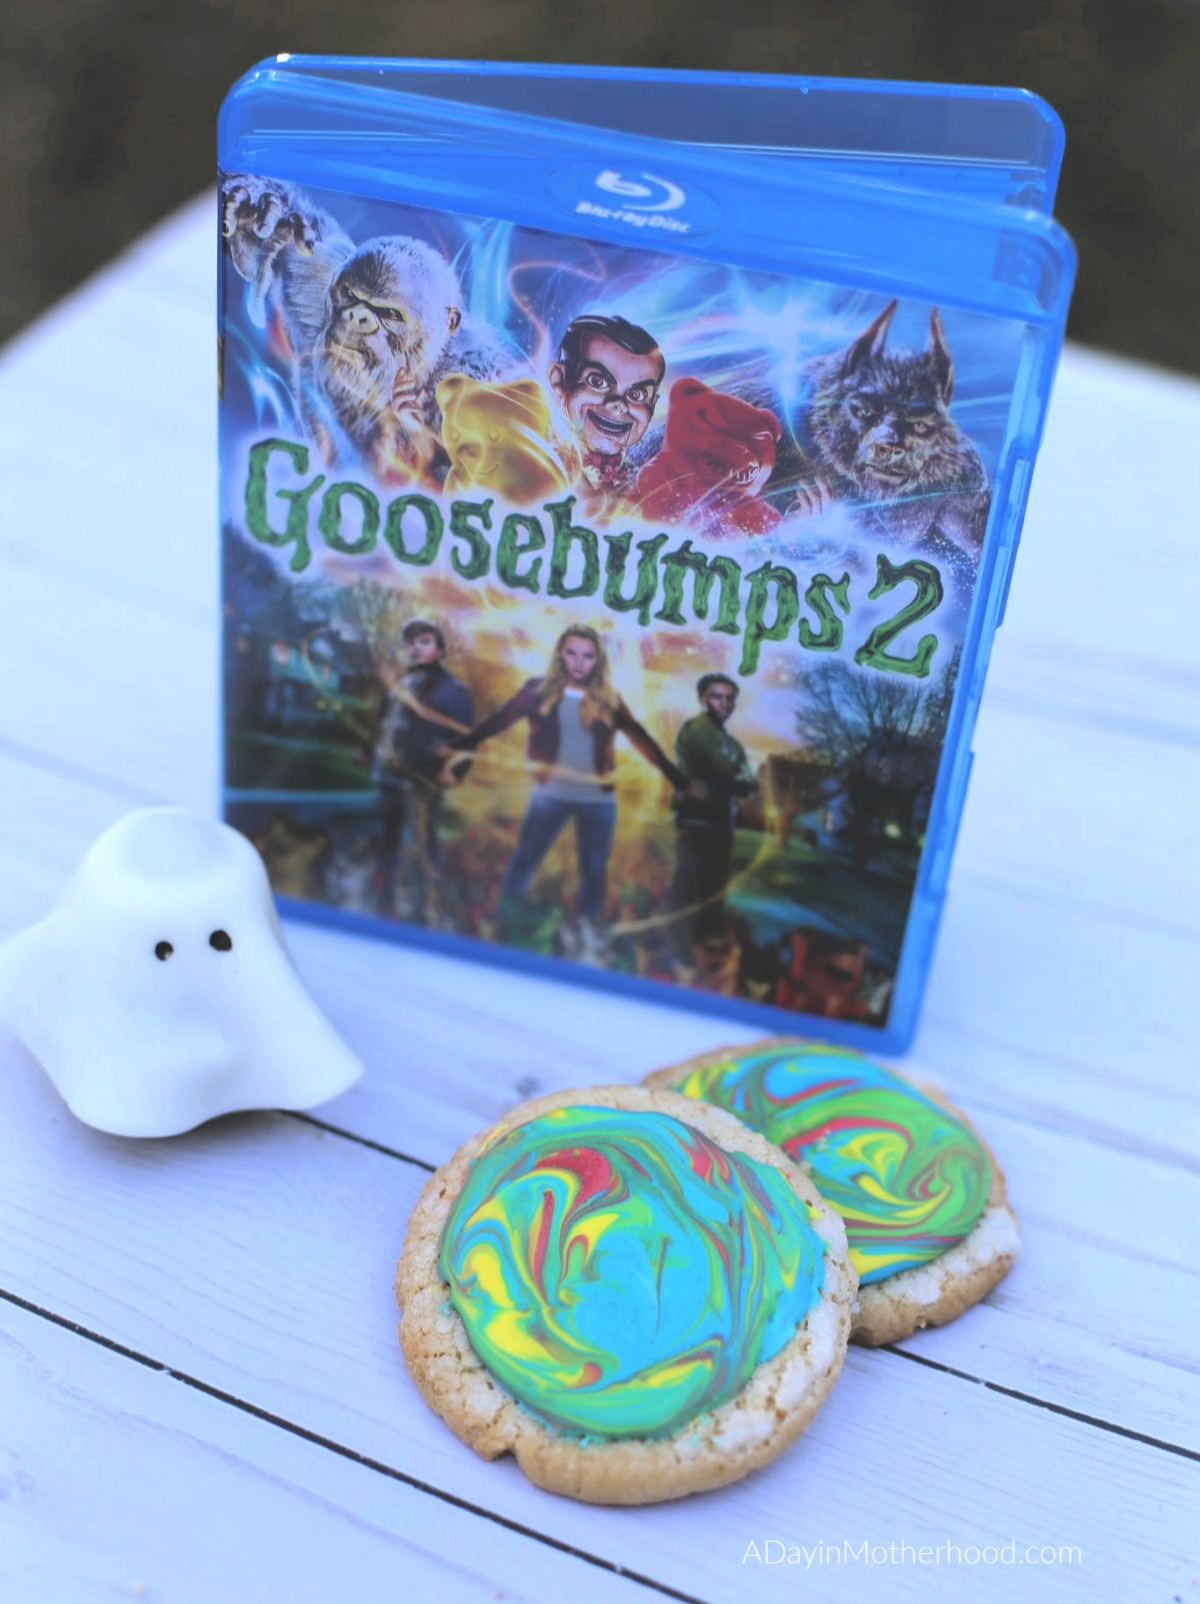 Goosebumps 2 Movie Night: Mini Ghost Cupcakes, Vortex Cookies & a Scavenger Hunt for the whole family